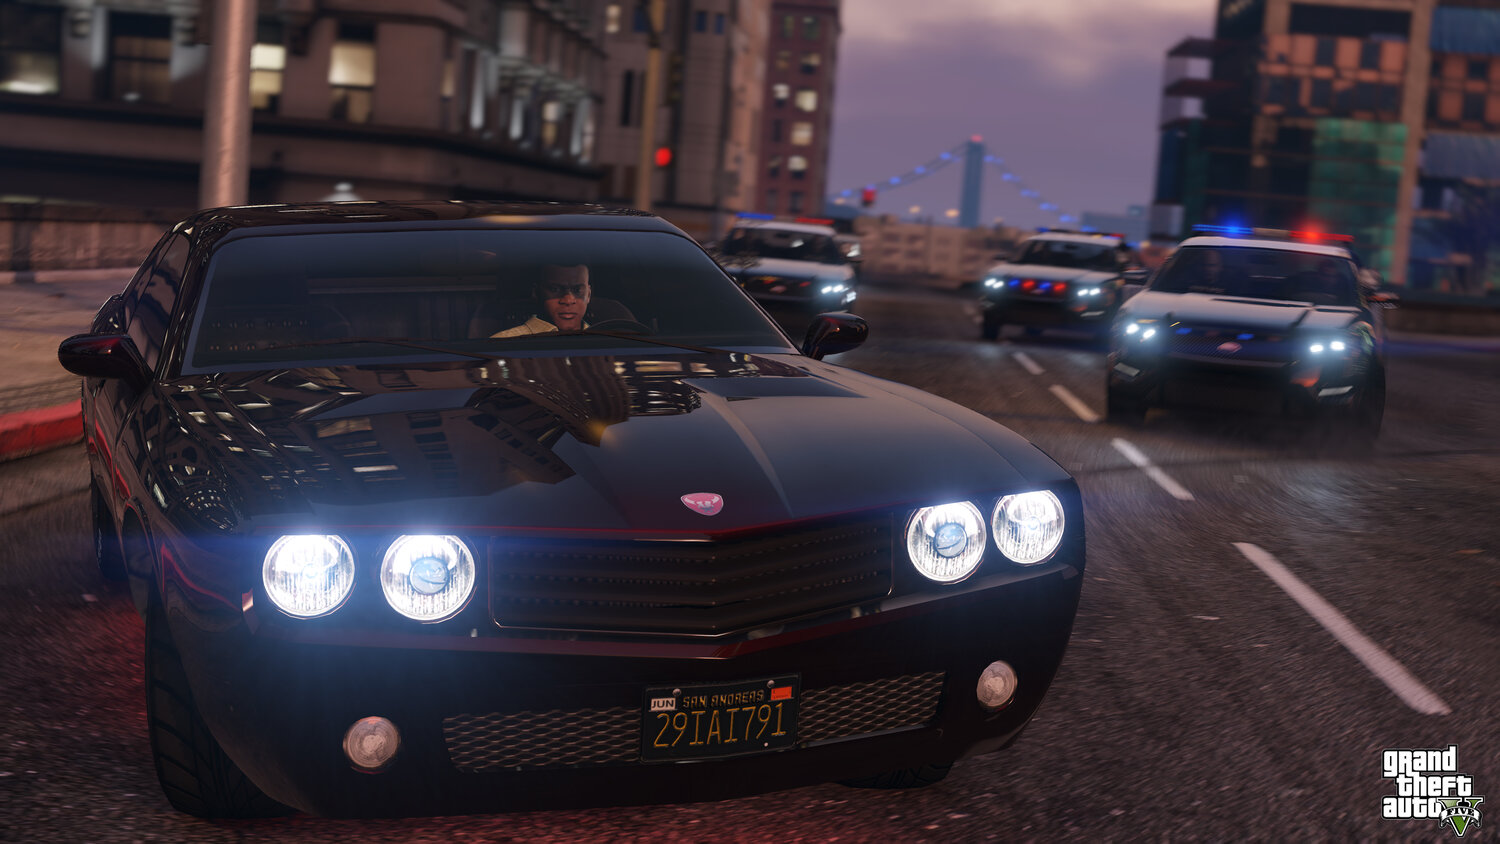 Grand Theft Auto V is free on the Epic Games Store